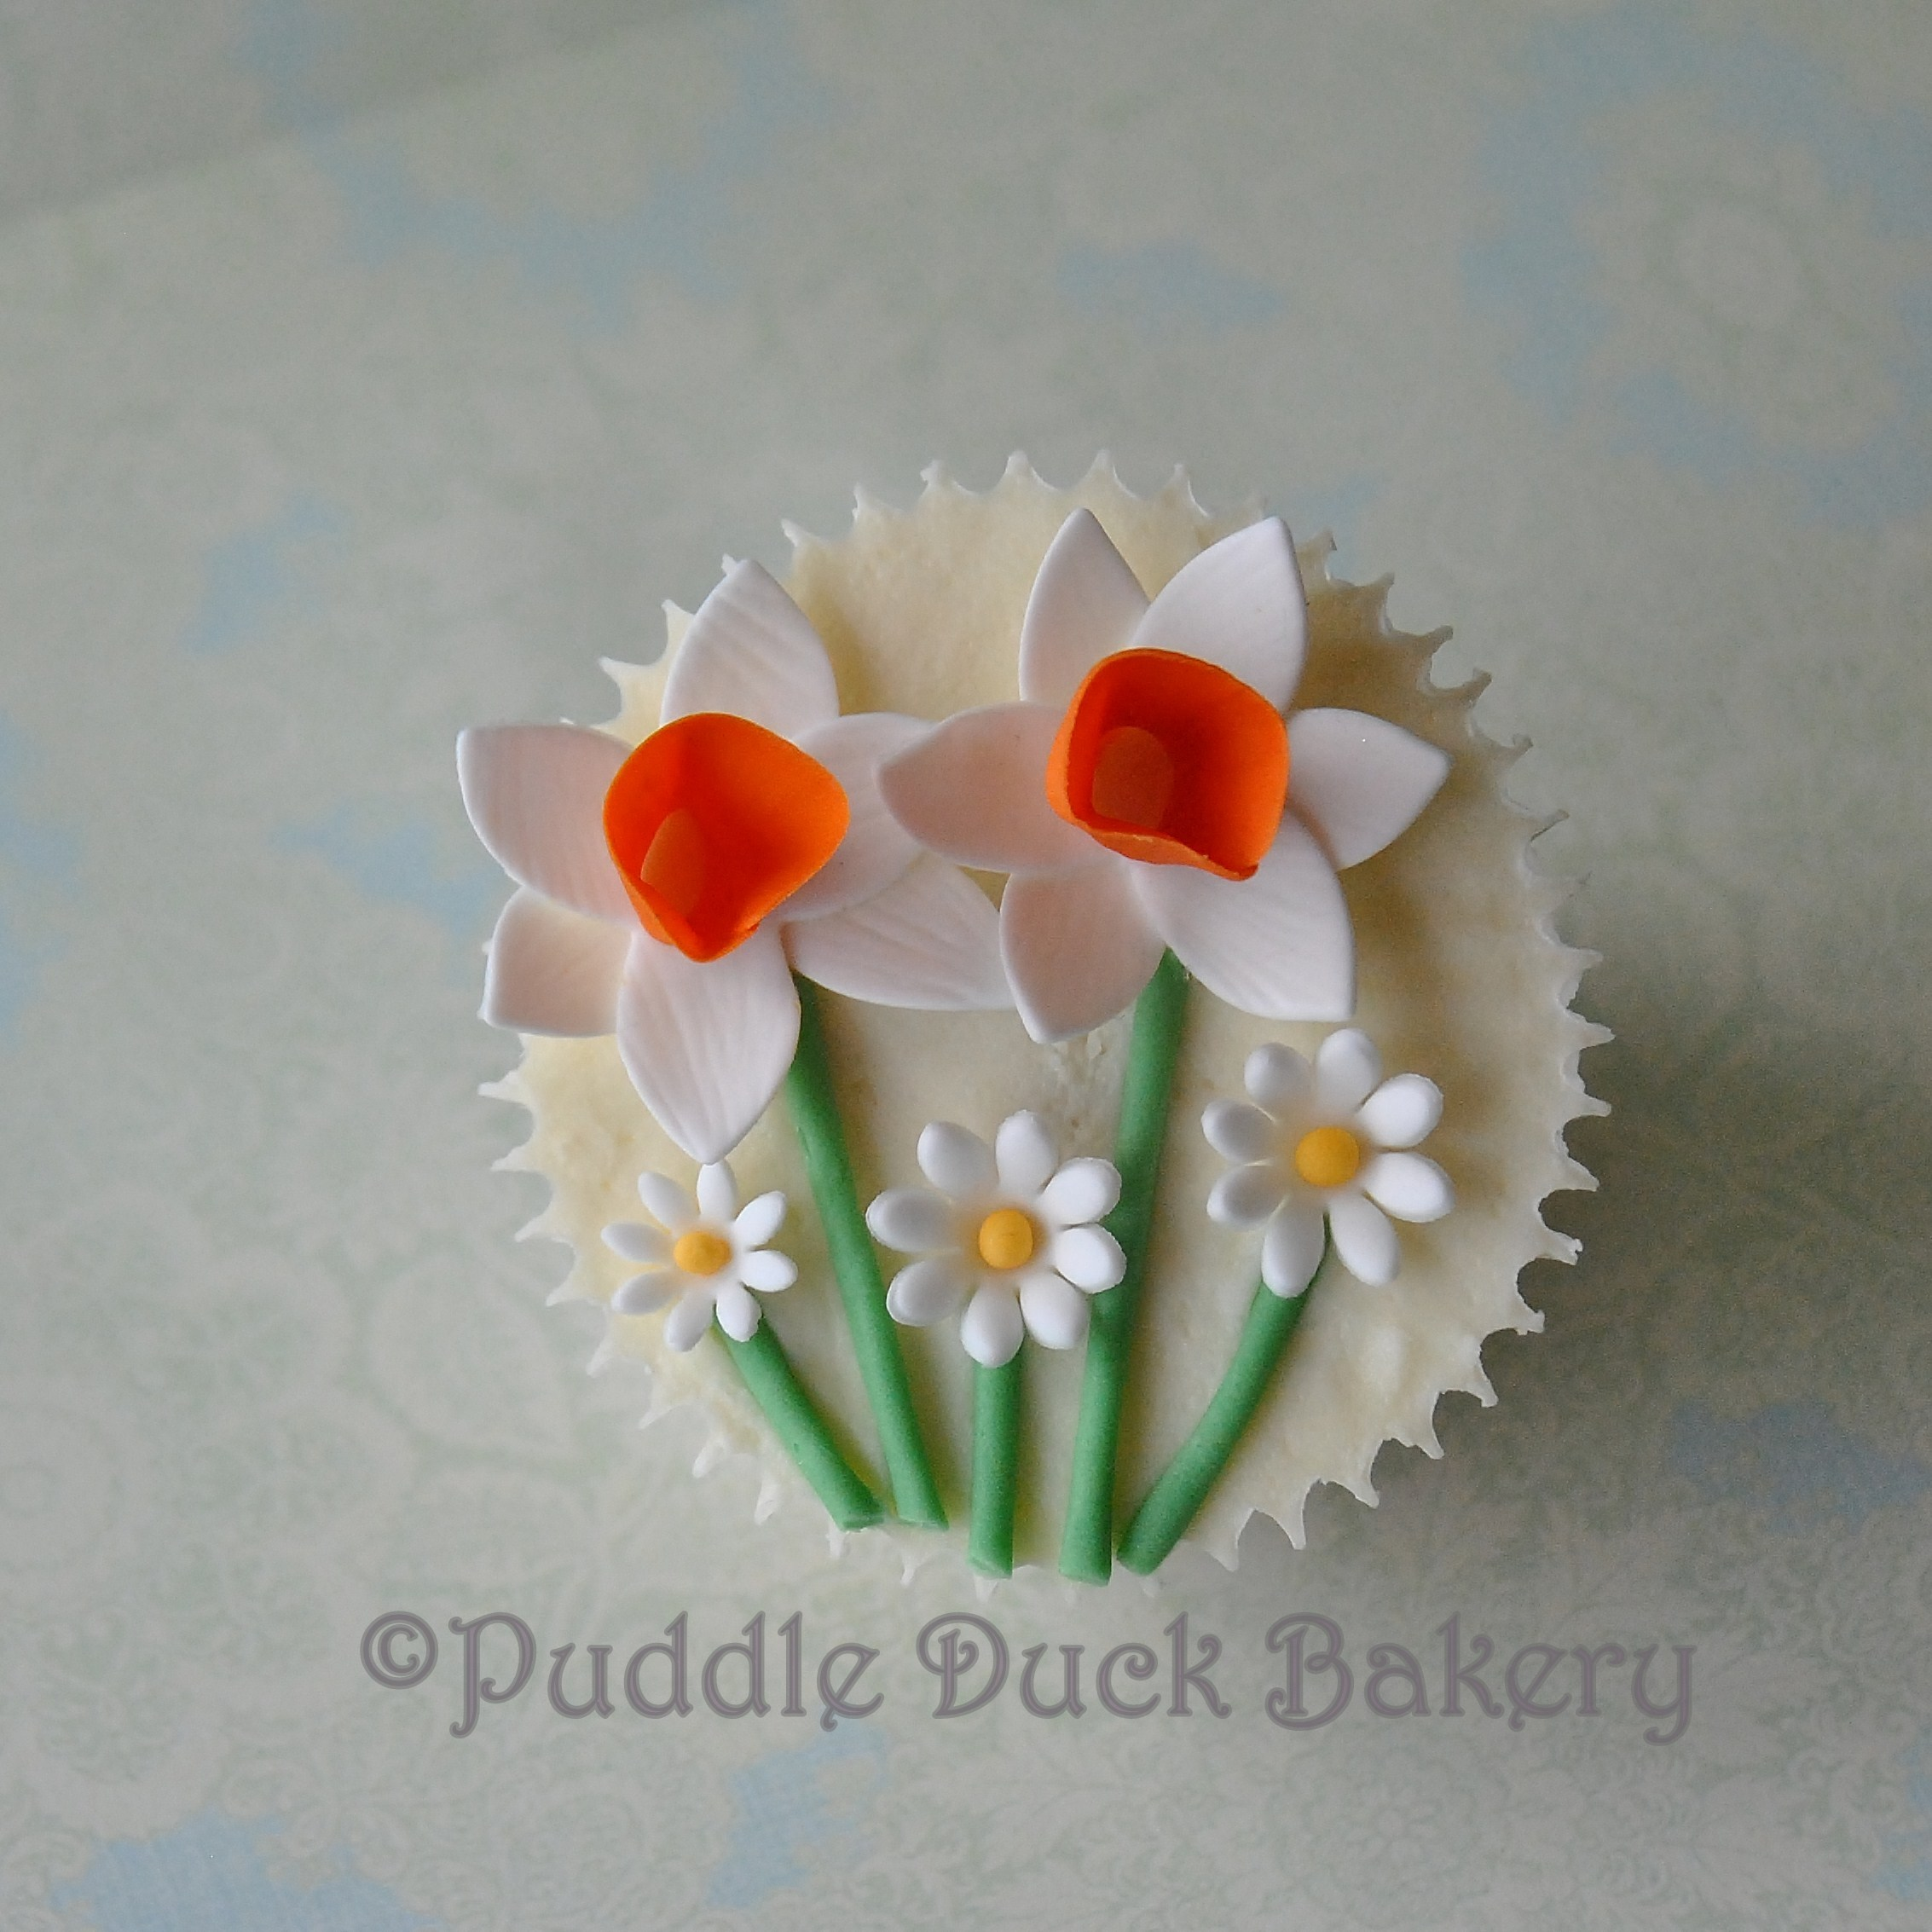 An example of daffodils on a cupcake